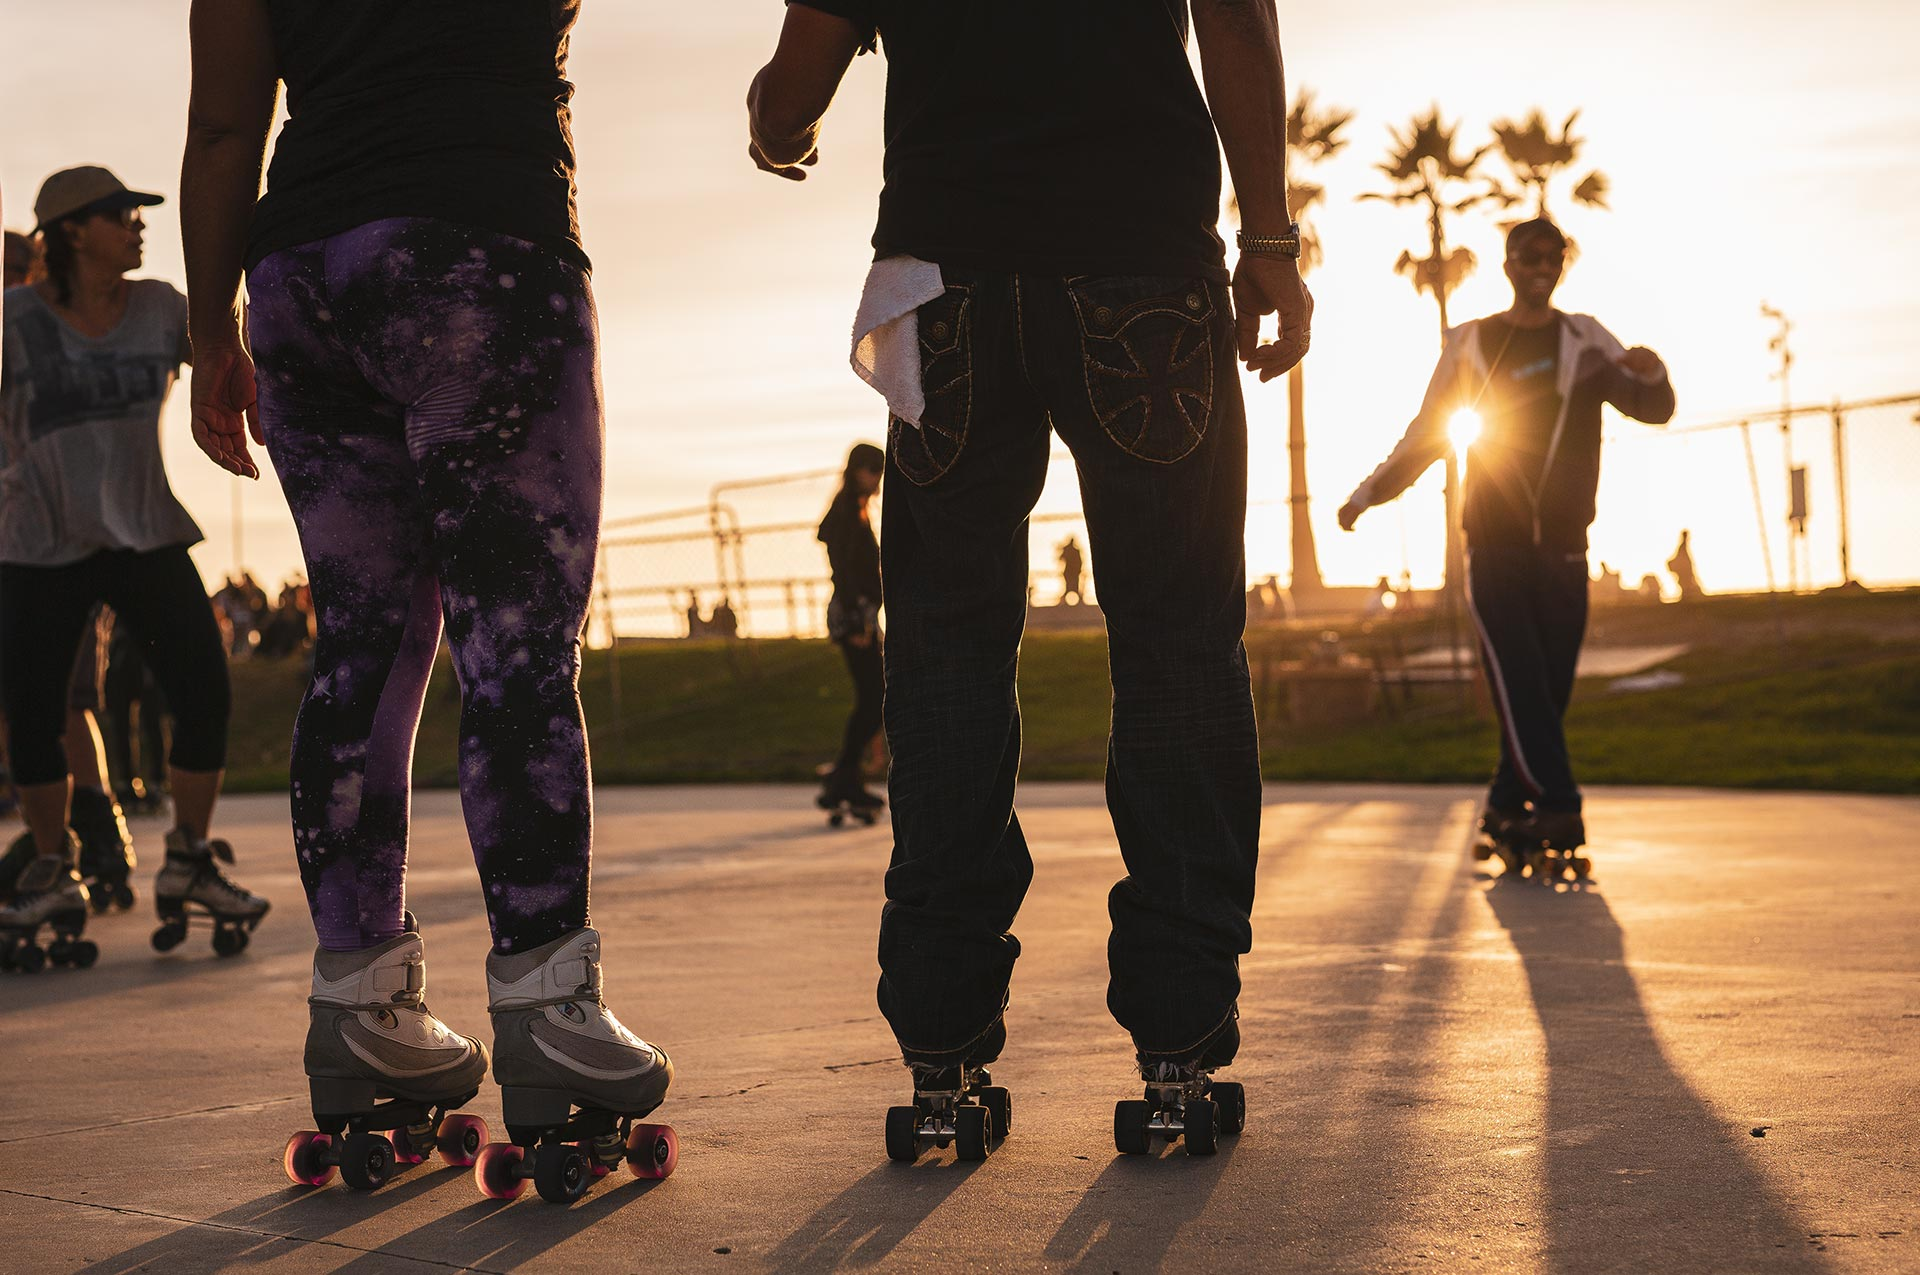 Roller Skating in Venice Beach Boardwalk